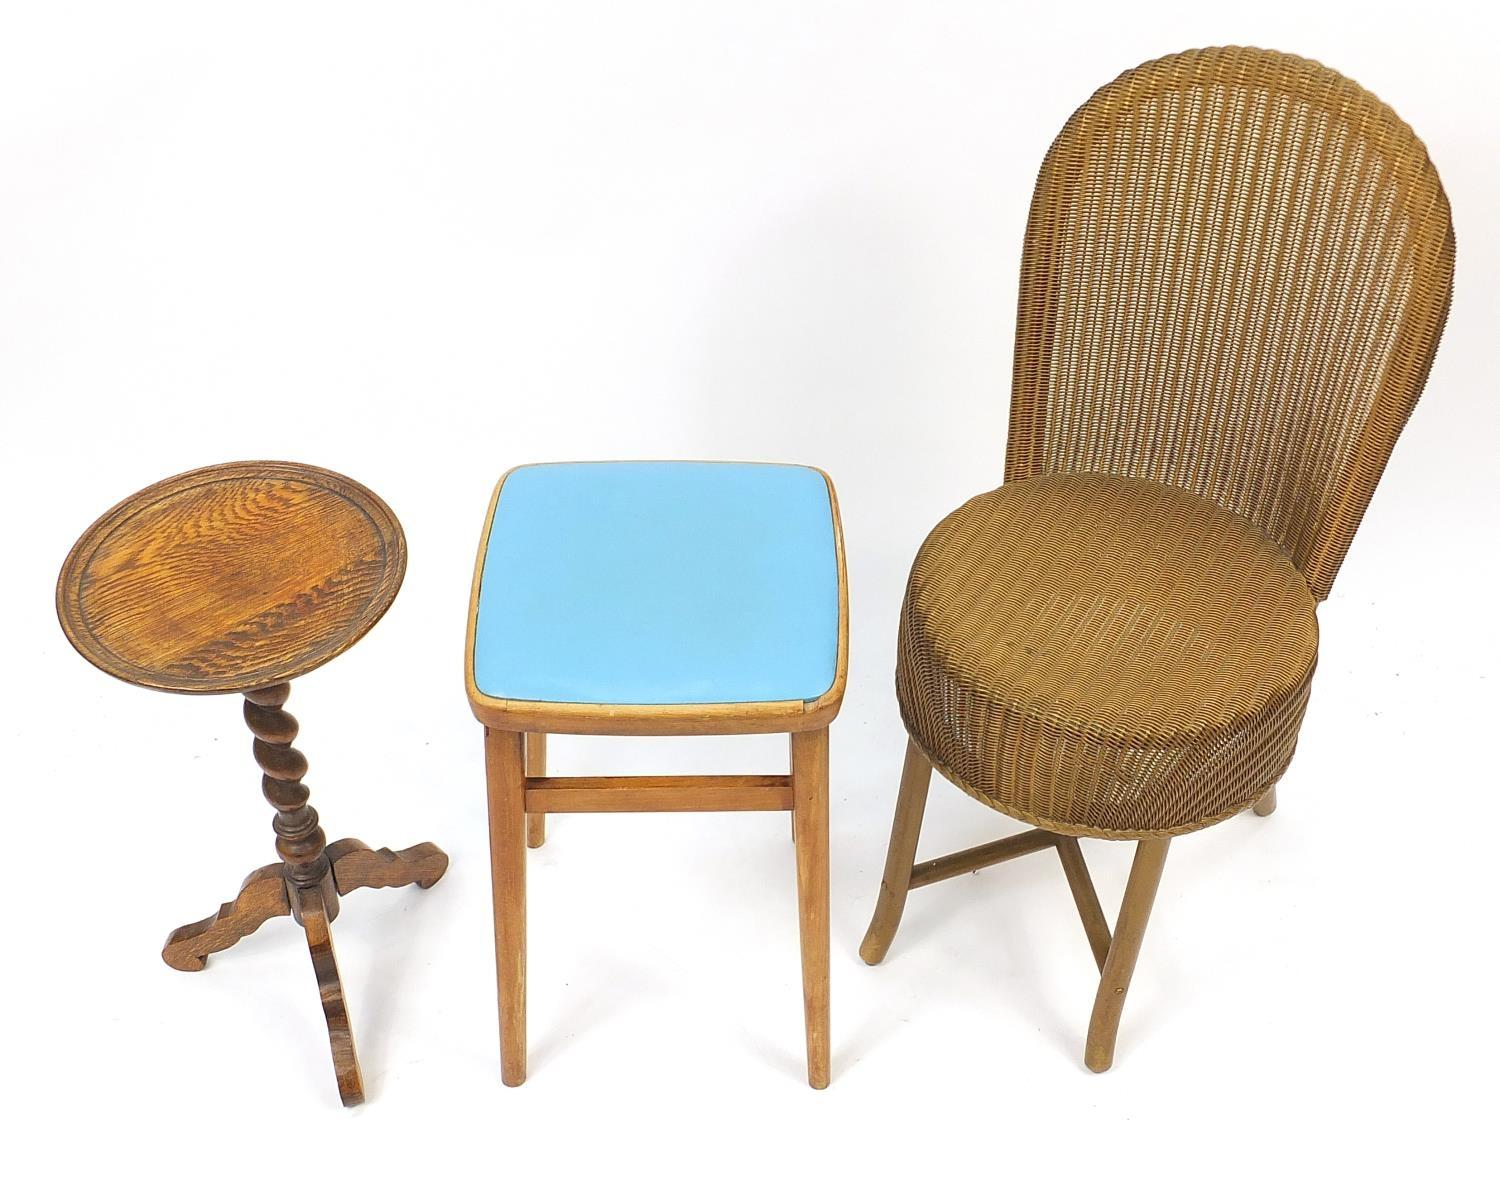 Occasional furniture including a Lloyd loom chair and barley twist tripod occasional table, the - Image 2 of 3